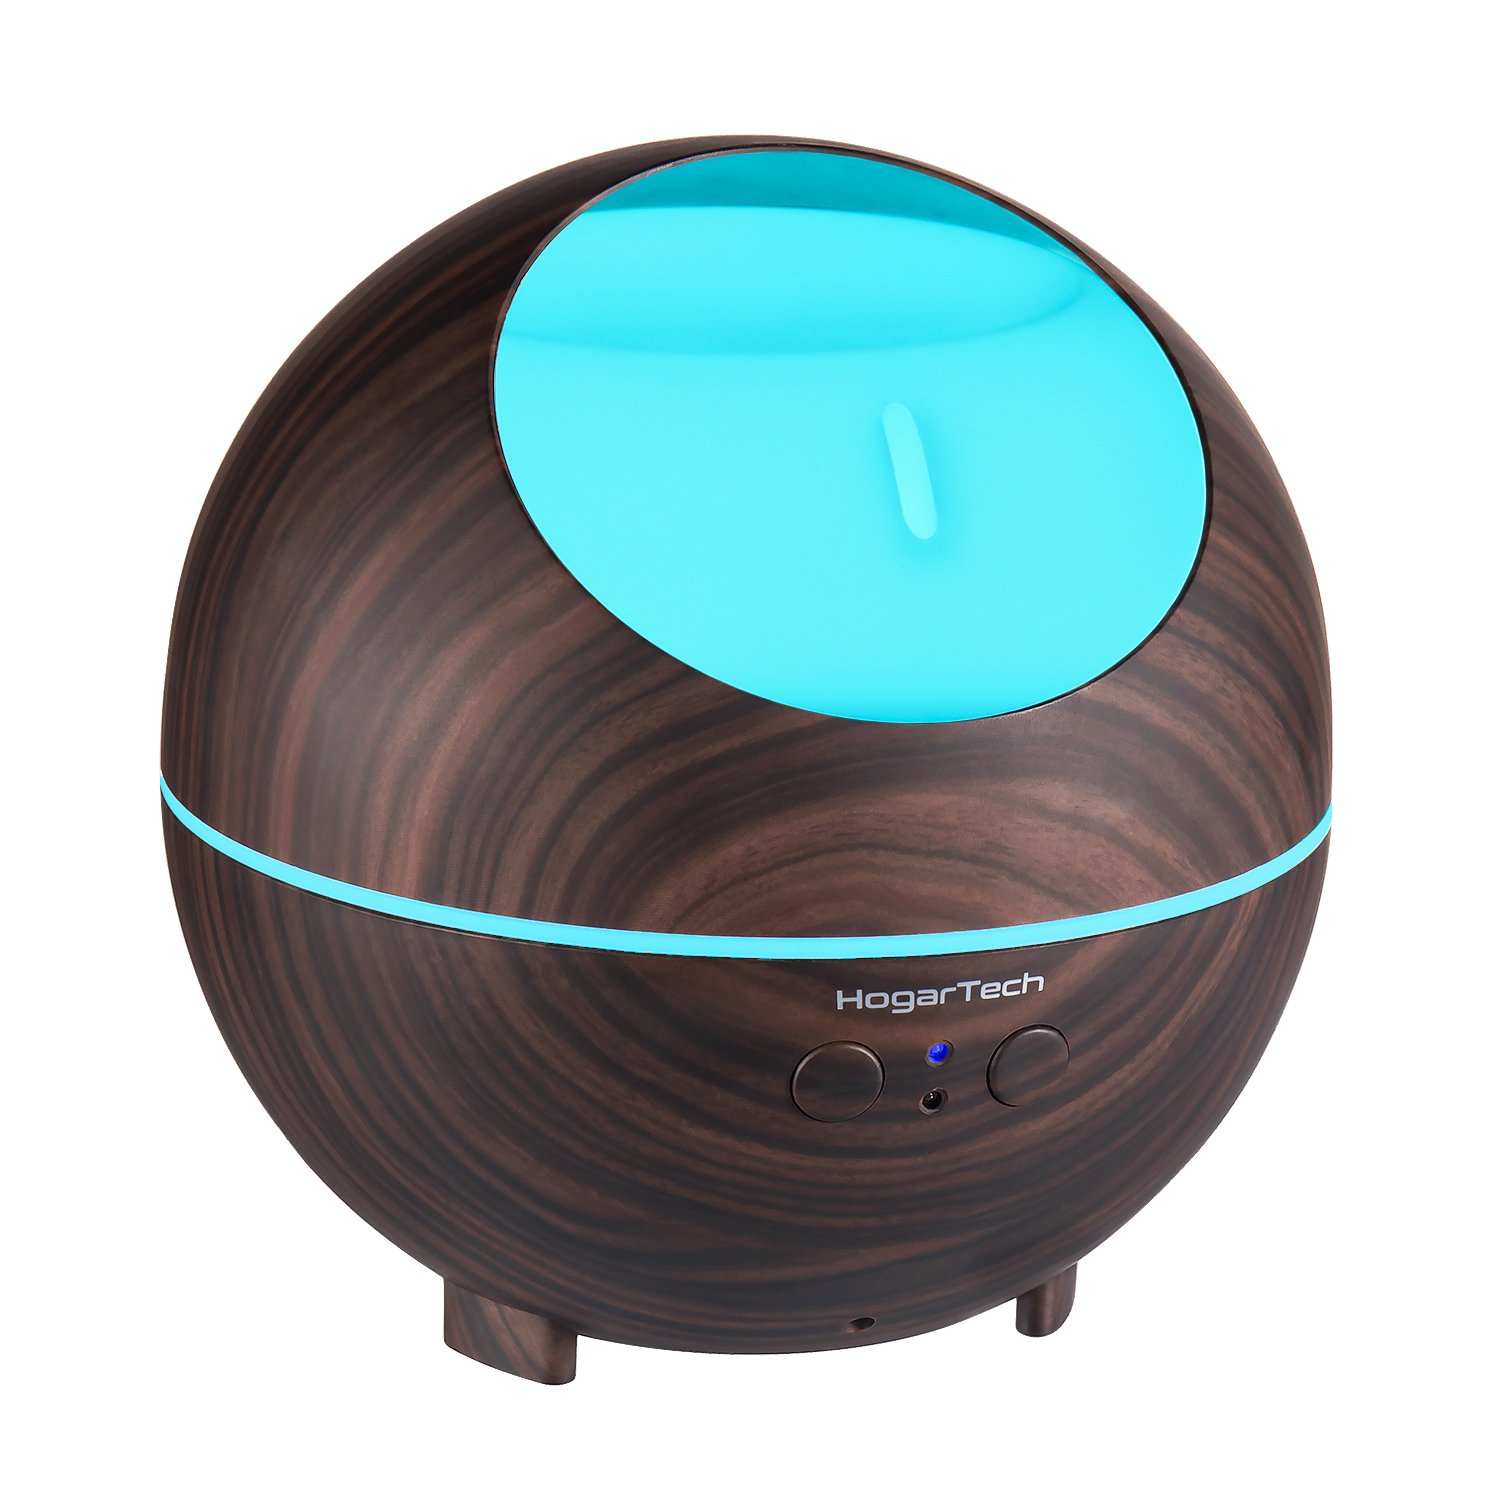 HogarTech 880ml Ultrasonic Oil Diffuser, High Capacity Diffuser, Wood Grain Cool Mist Humidifier for Office Home Study Yoga Spa